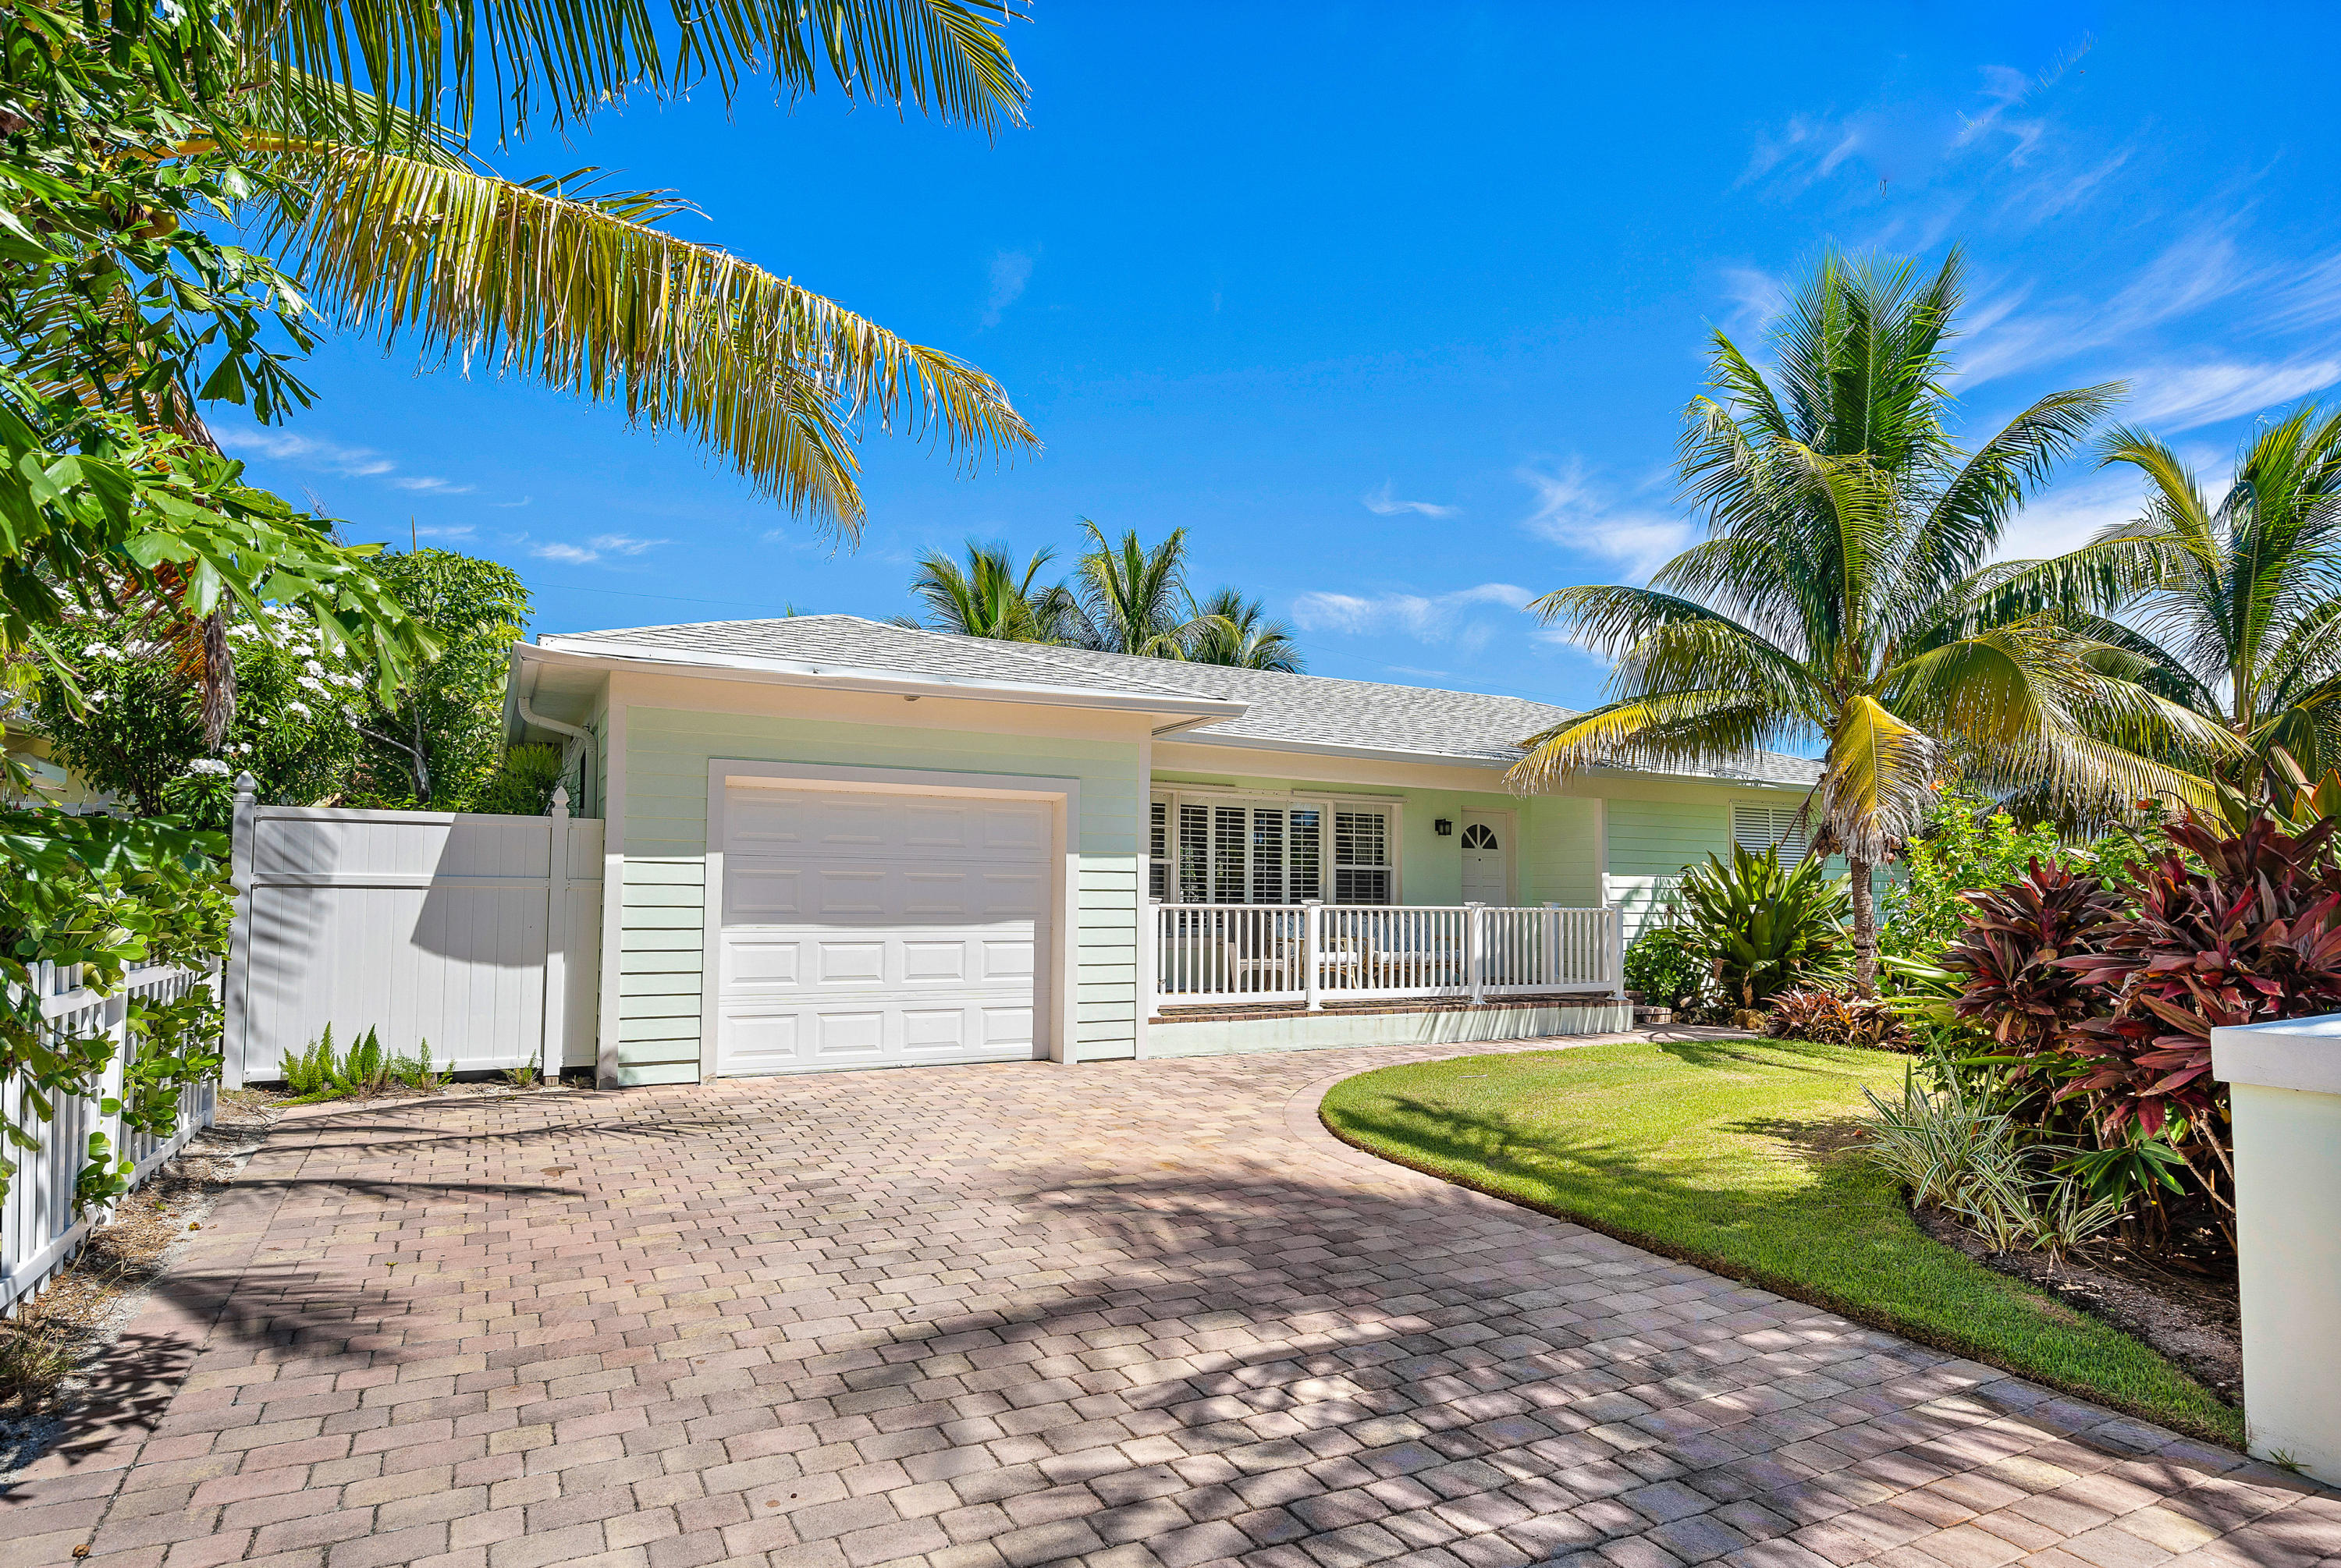 PALM BEACH SHORES REAL ESTATE